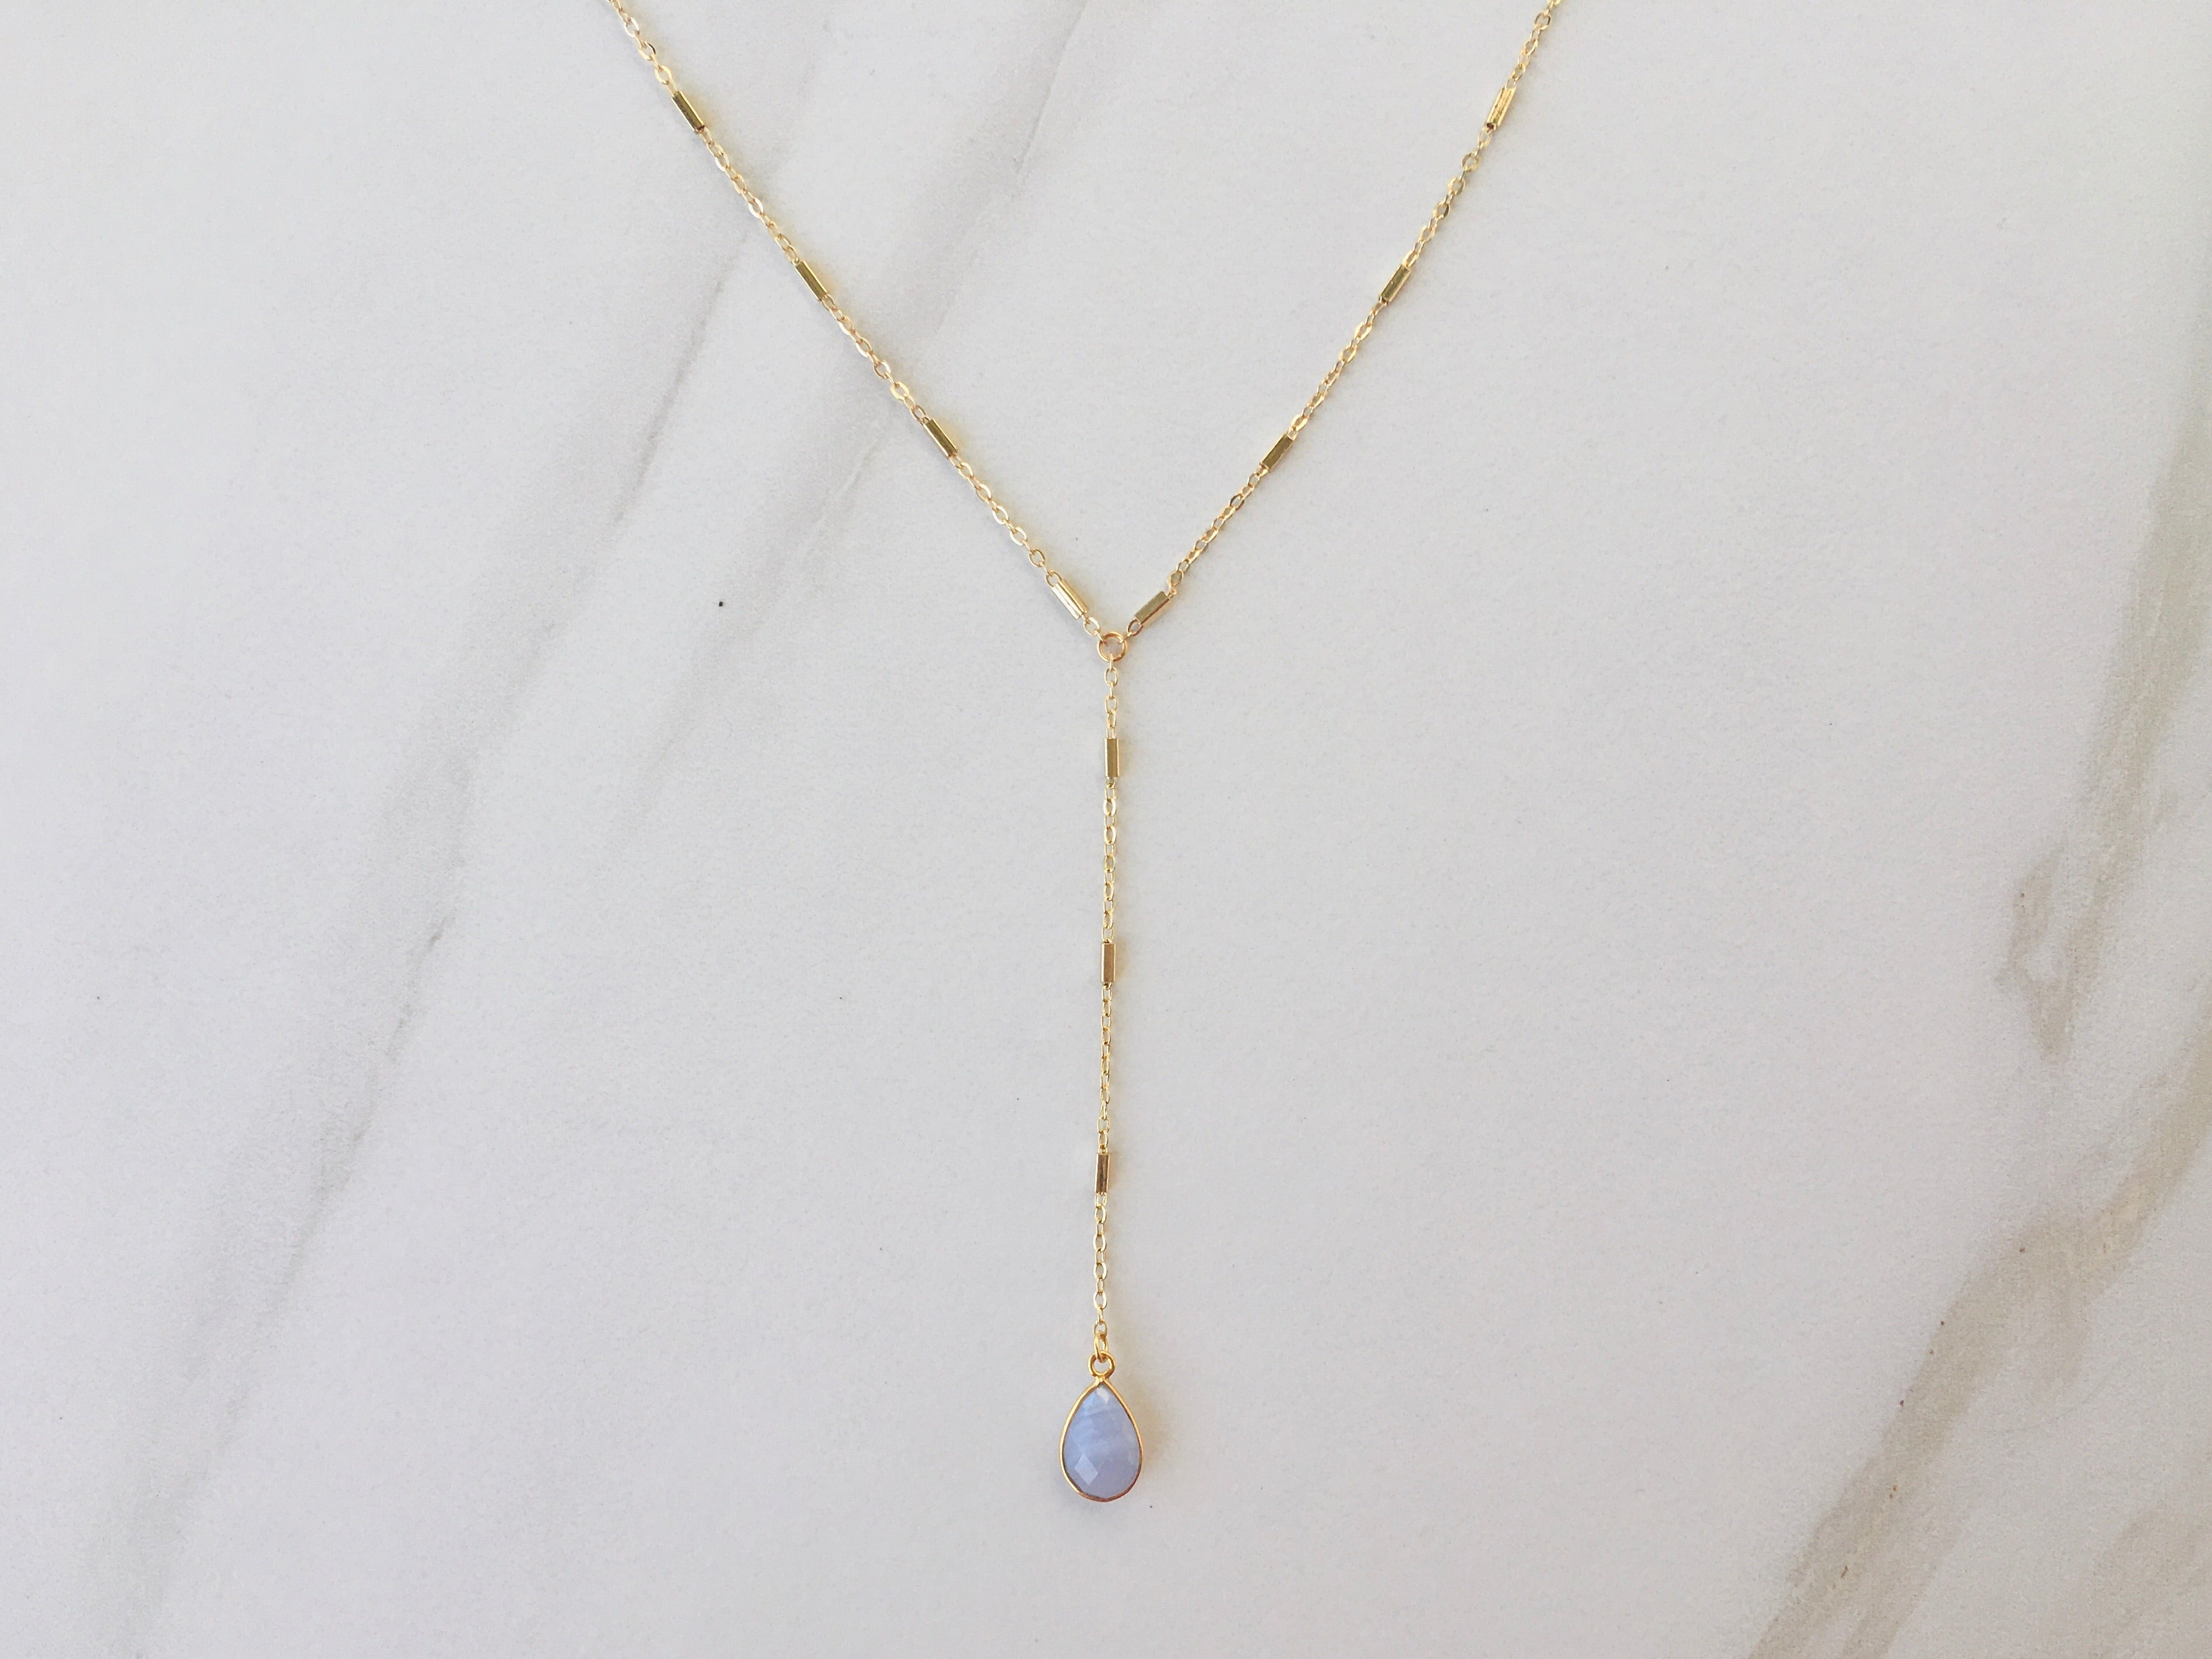 Marina Del Rey Lariat Necklace